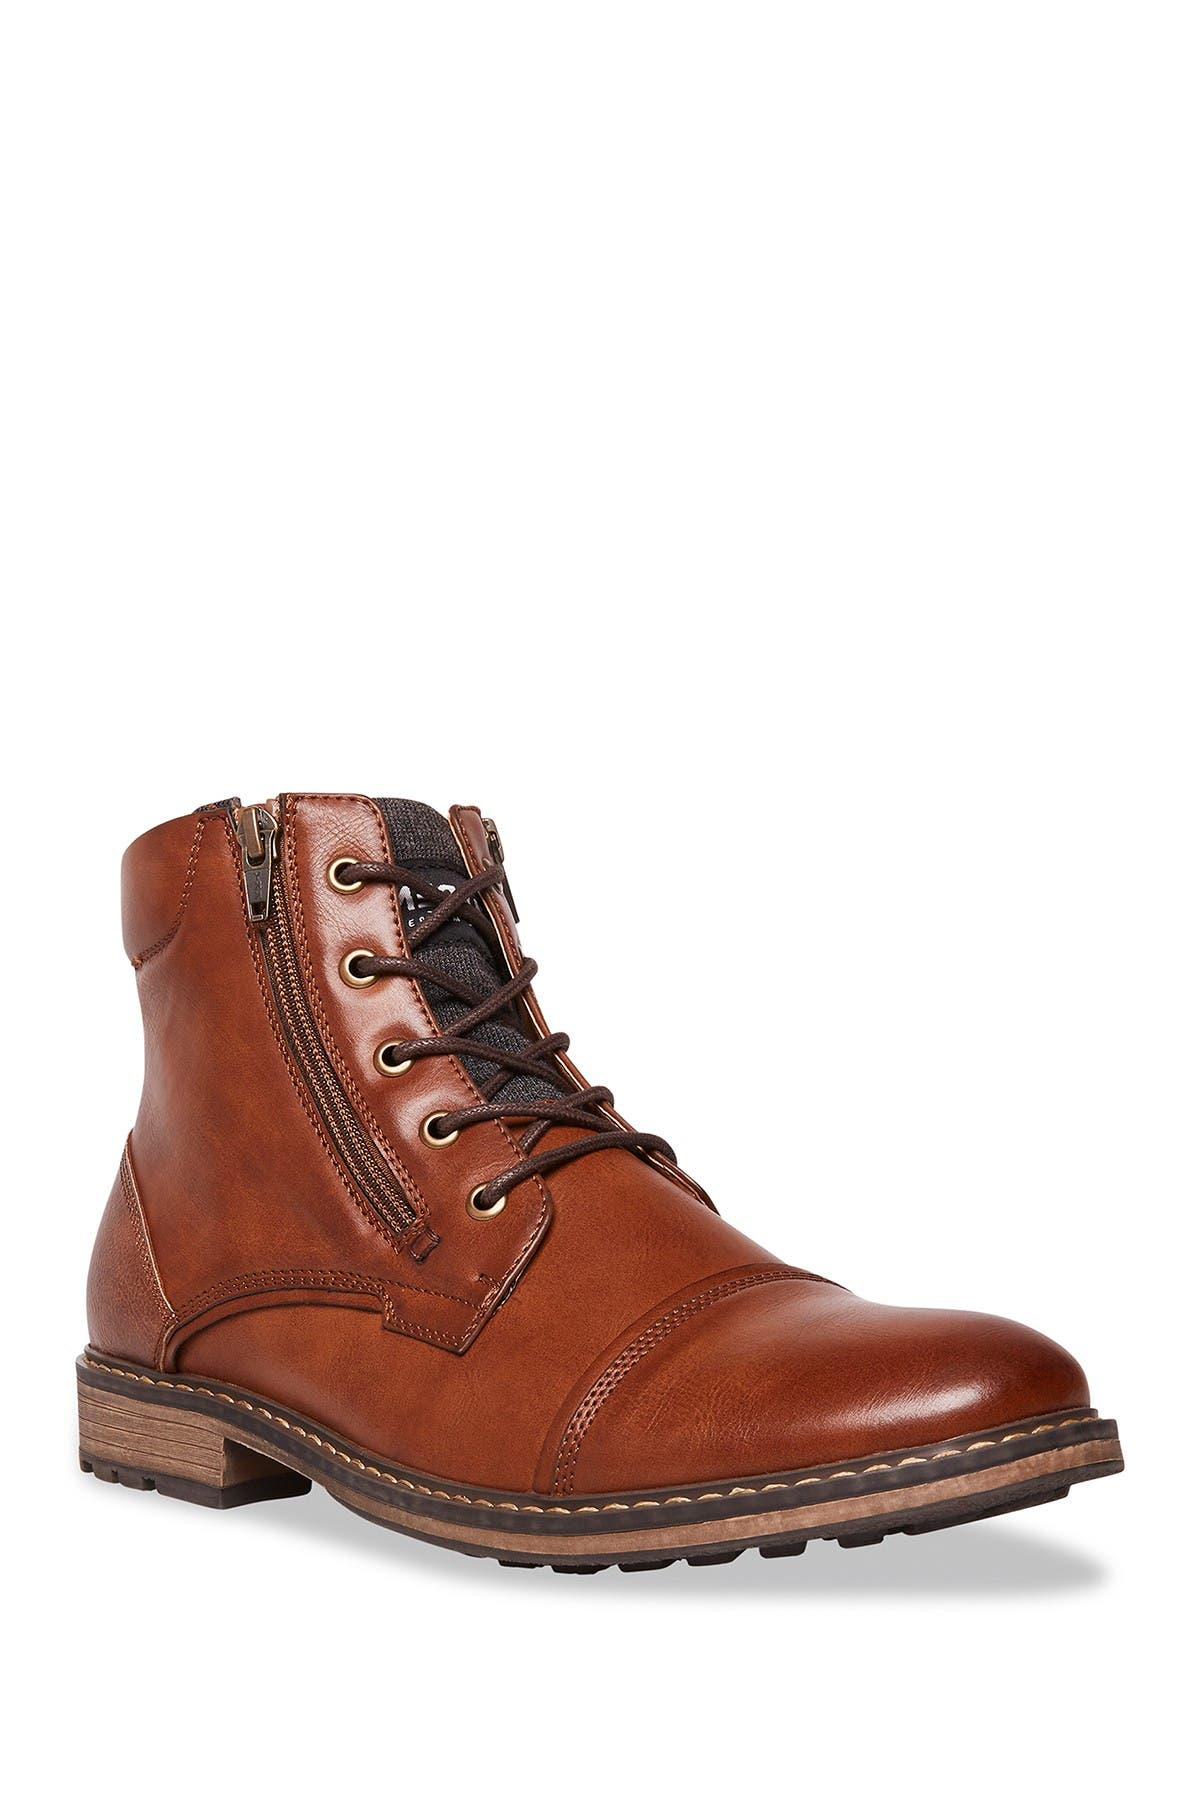 Image of Madden Tranik Lace-Up Boot